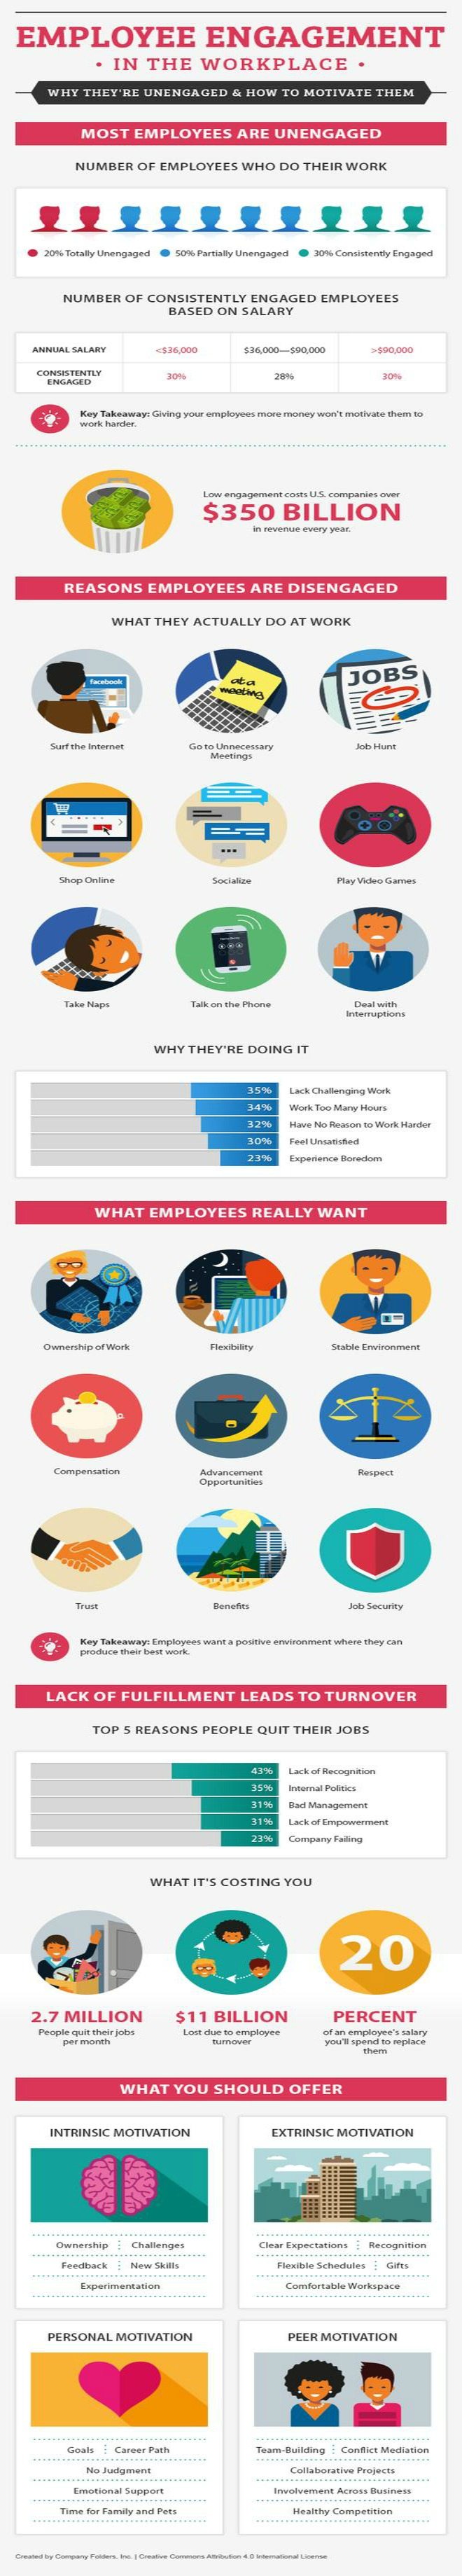 Employee engagement infographic cr